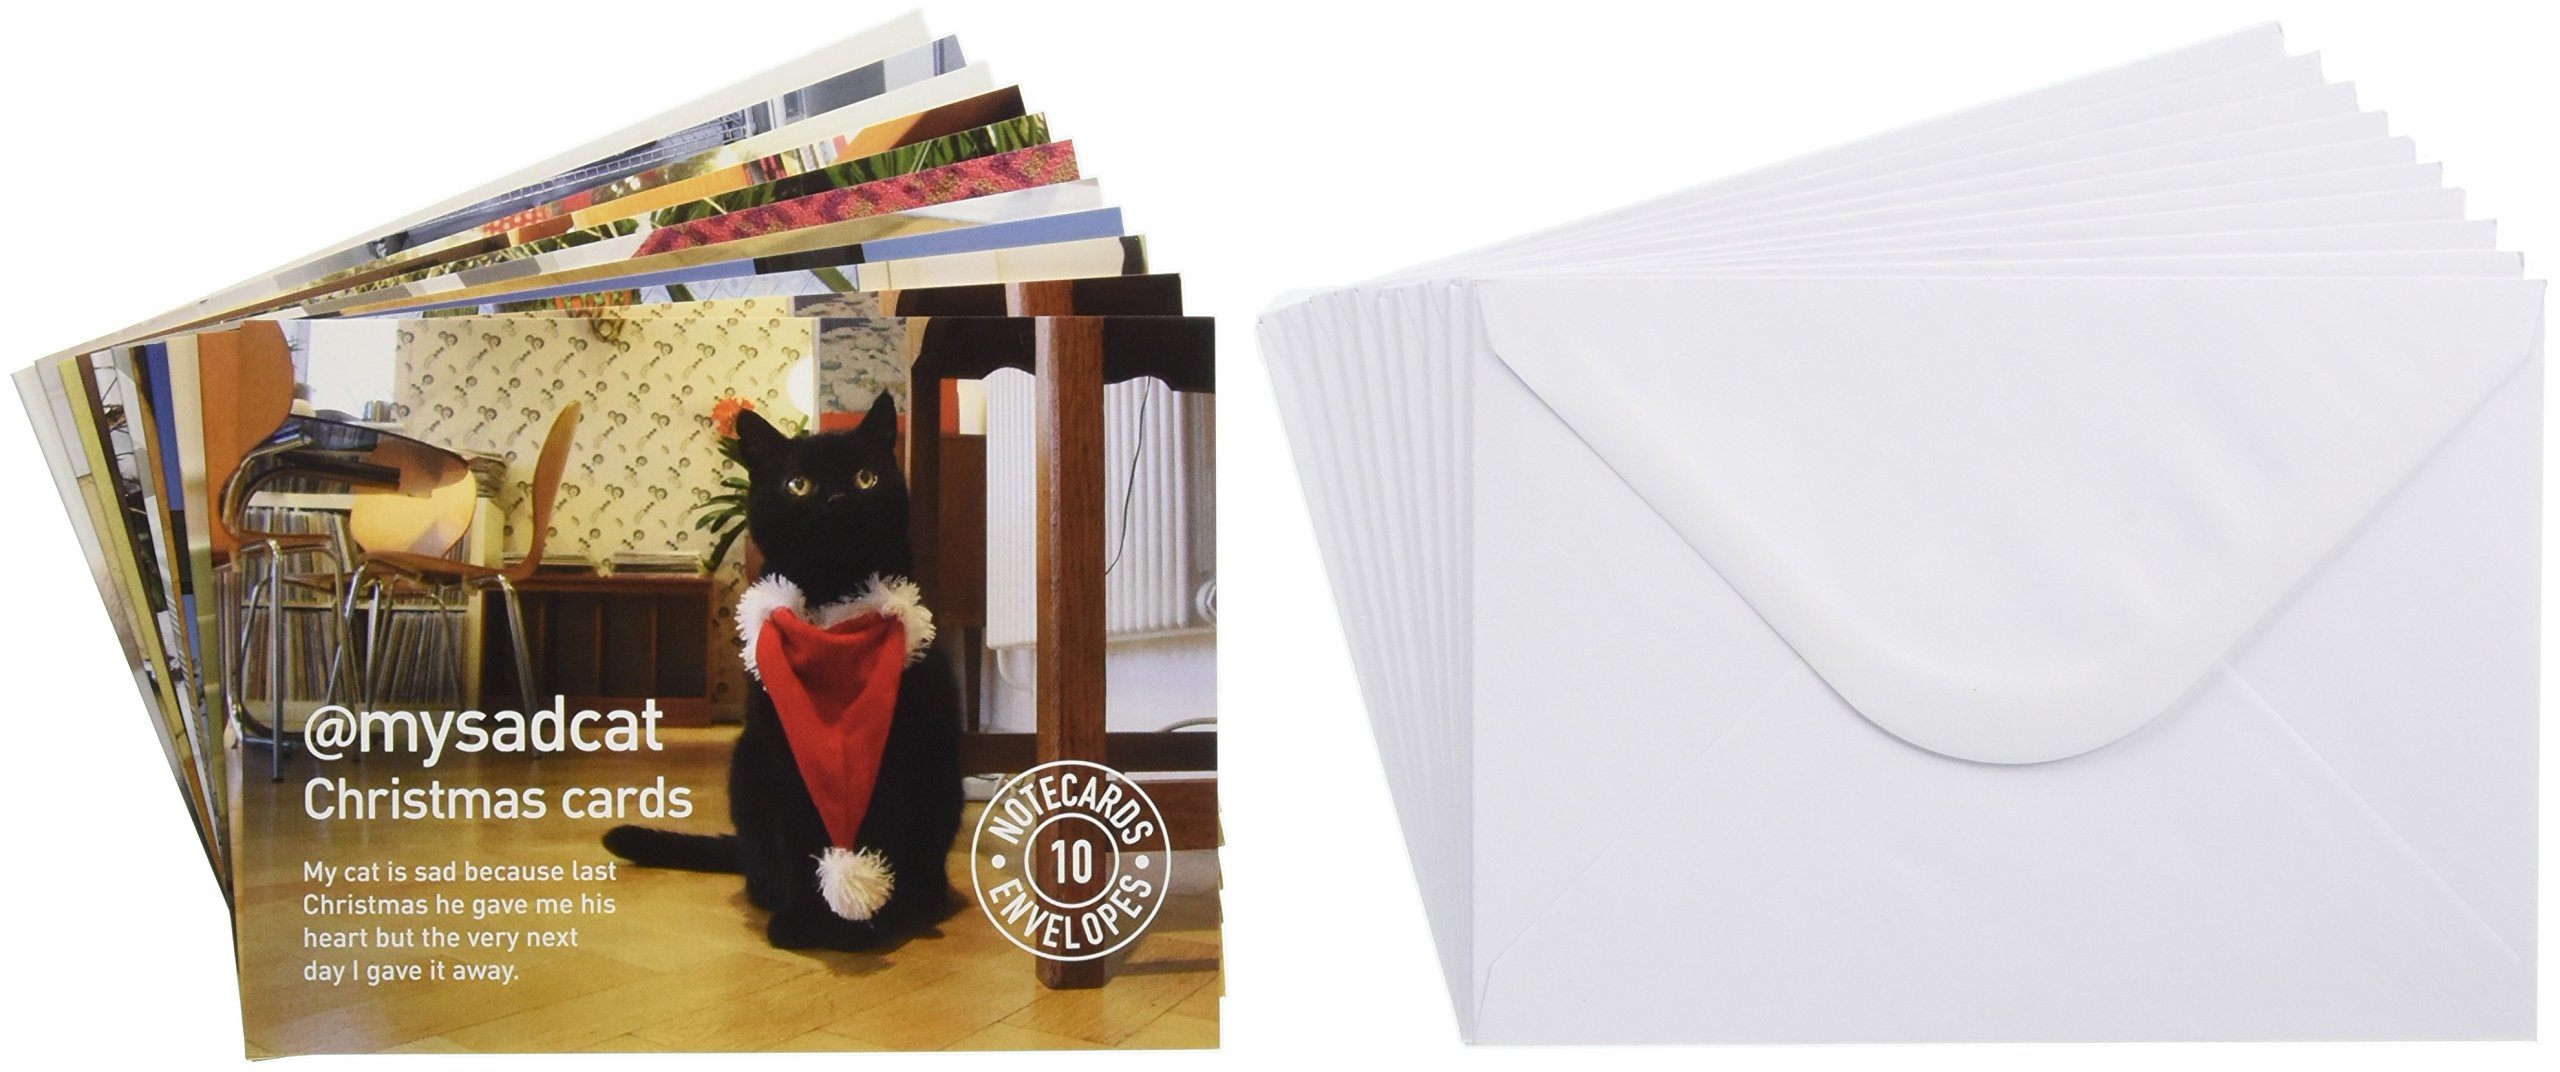 mysadcat Christmas Cards: 10 cards and envelopes: Tom Cox ...